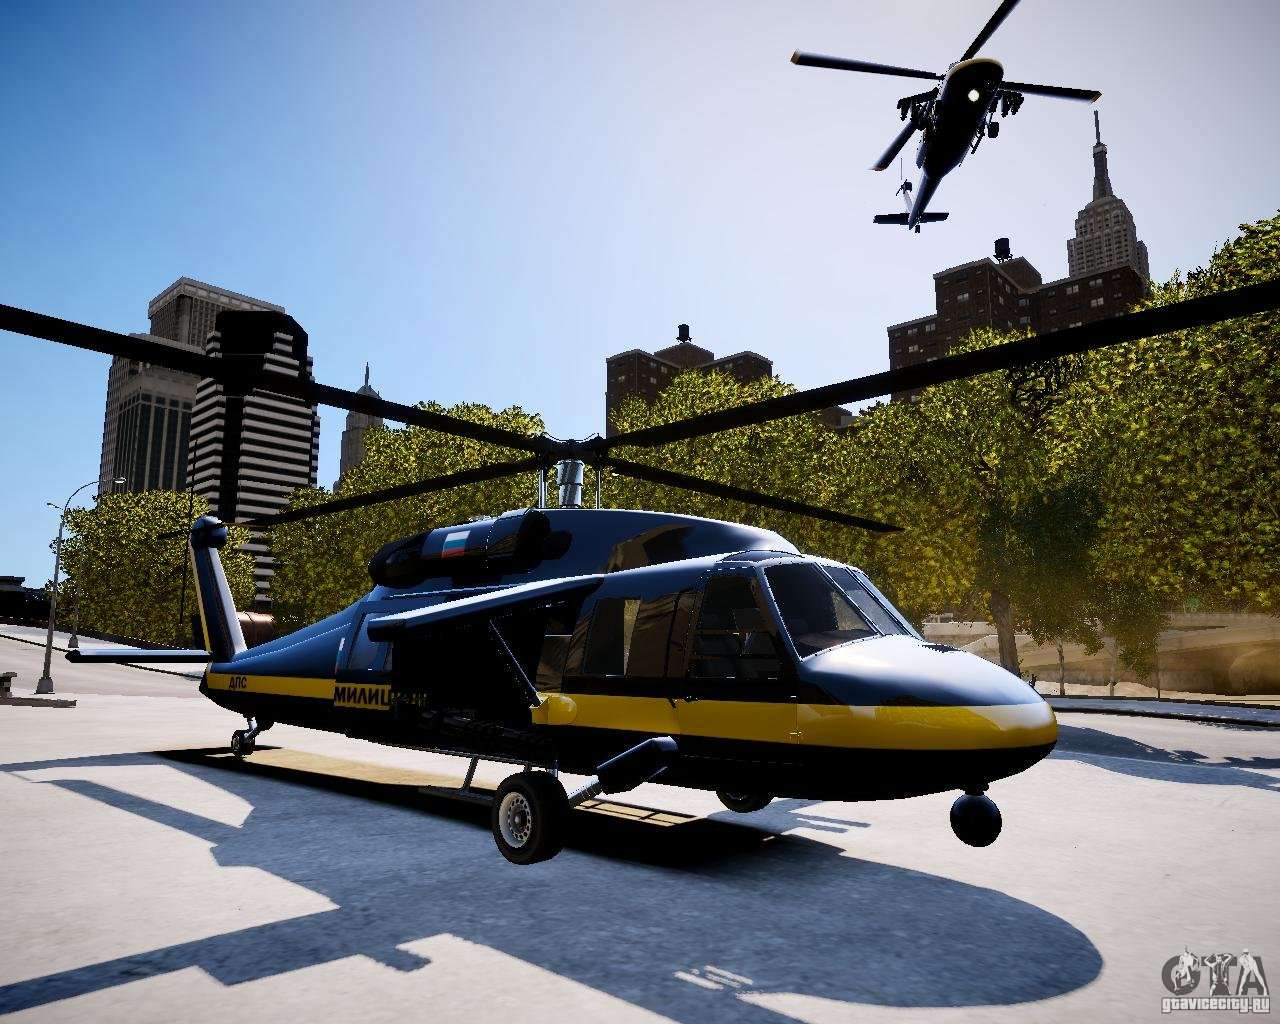 gta iv helicopters with 17590 Russian Annihilator on 50734 Vtol Warship Pj3 as well Maps together with 54786 Beta Police Maverick furthermore 17590 Russian Annihilator together with 32445 Christmas Island.